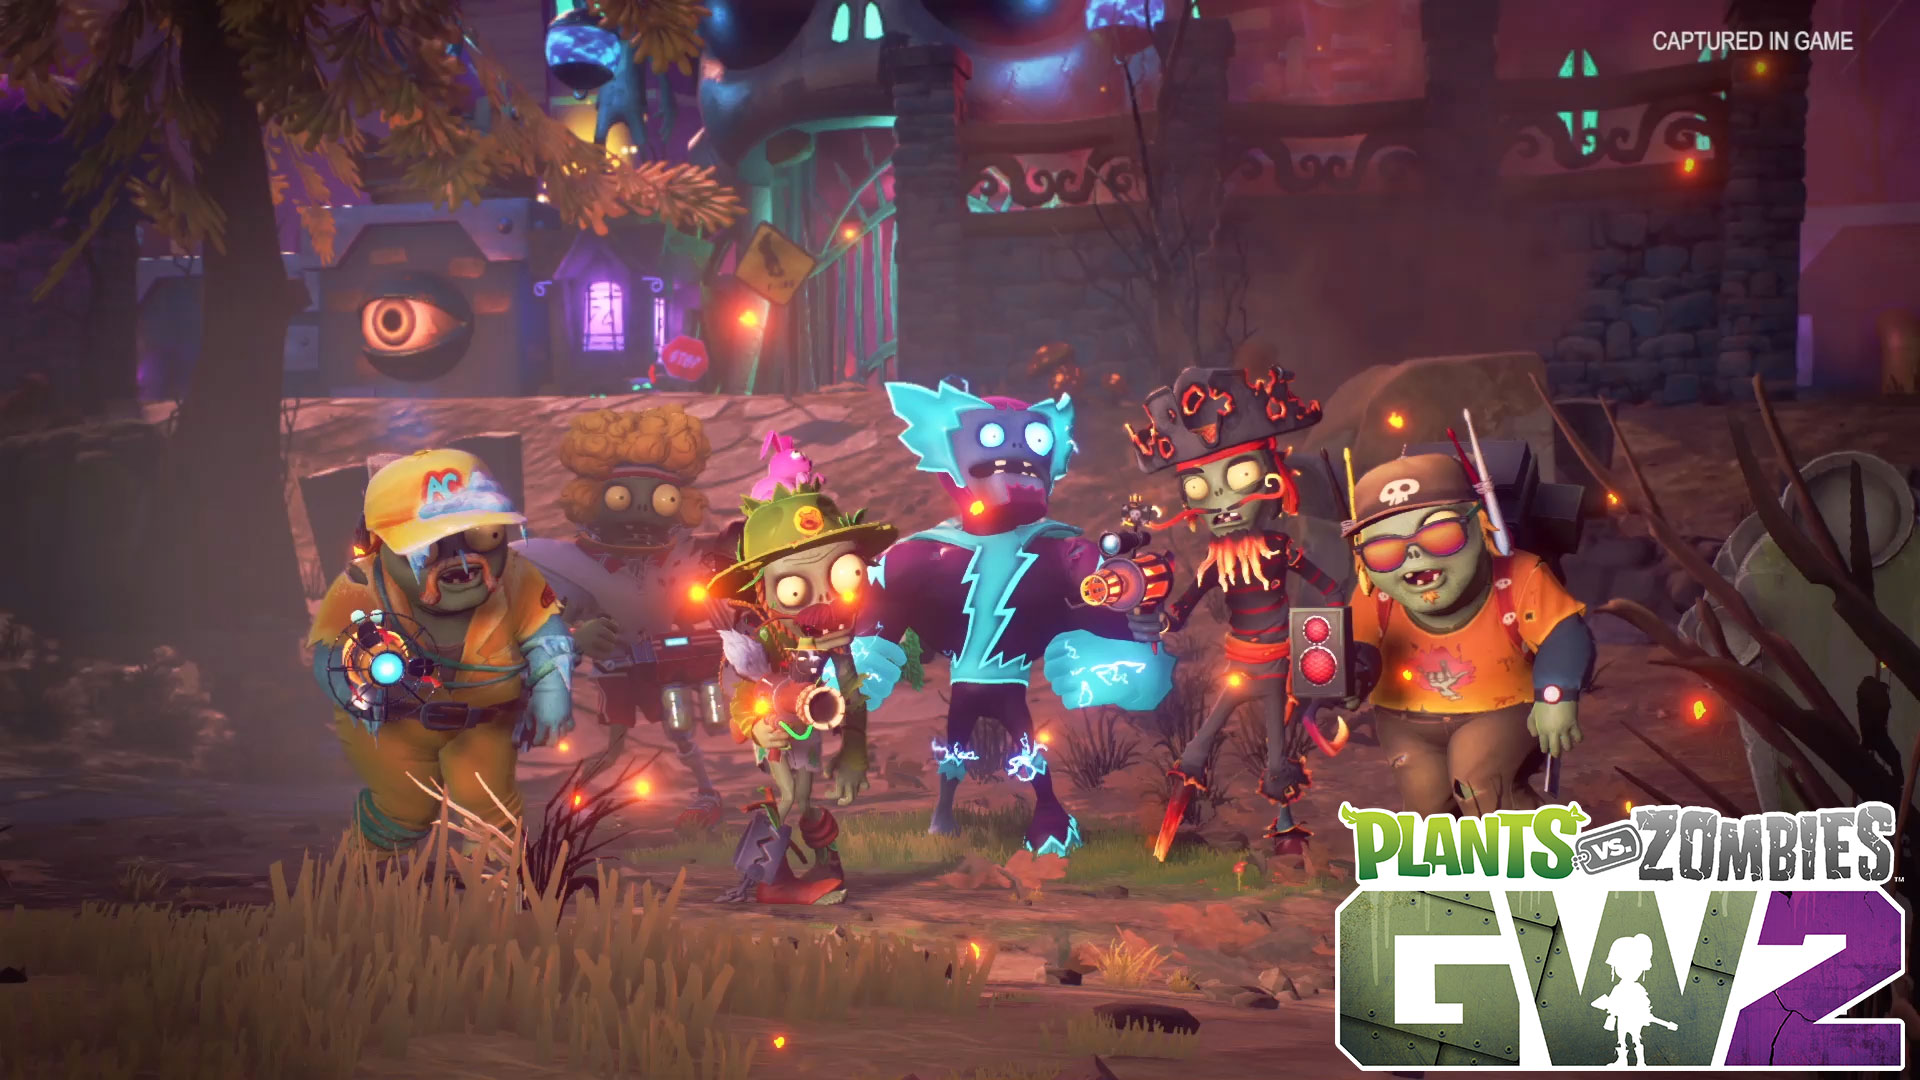 New zombie variants in plants vs zombies garden warfare 2 Plants vs zombies garden warfare 2 event calendar